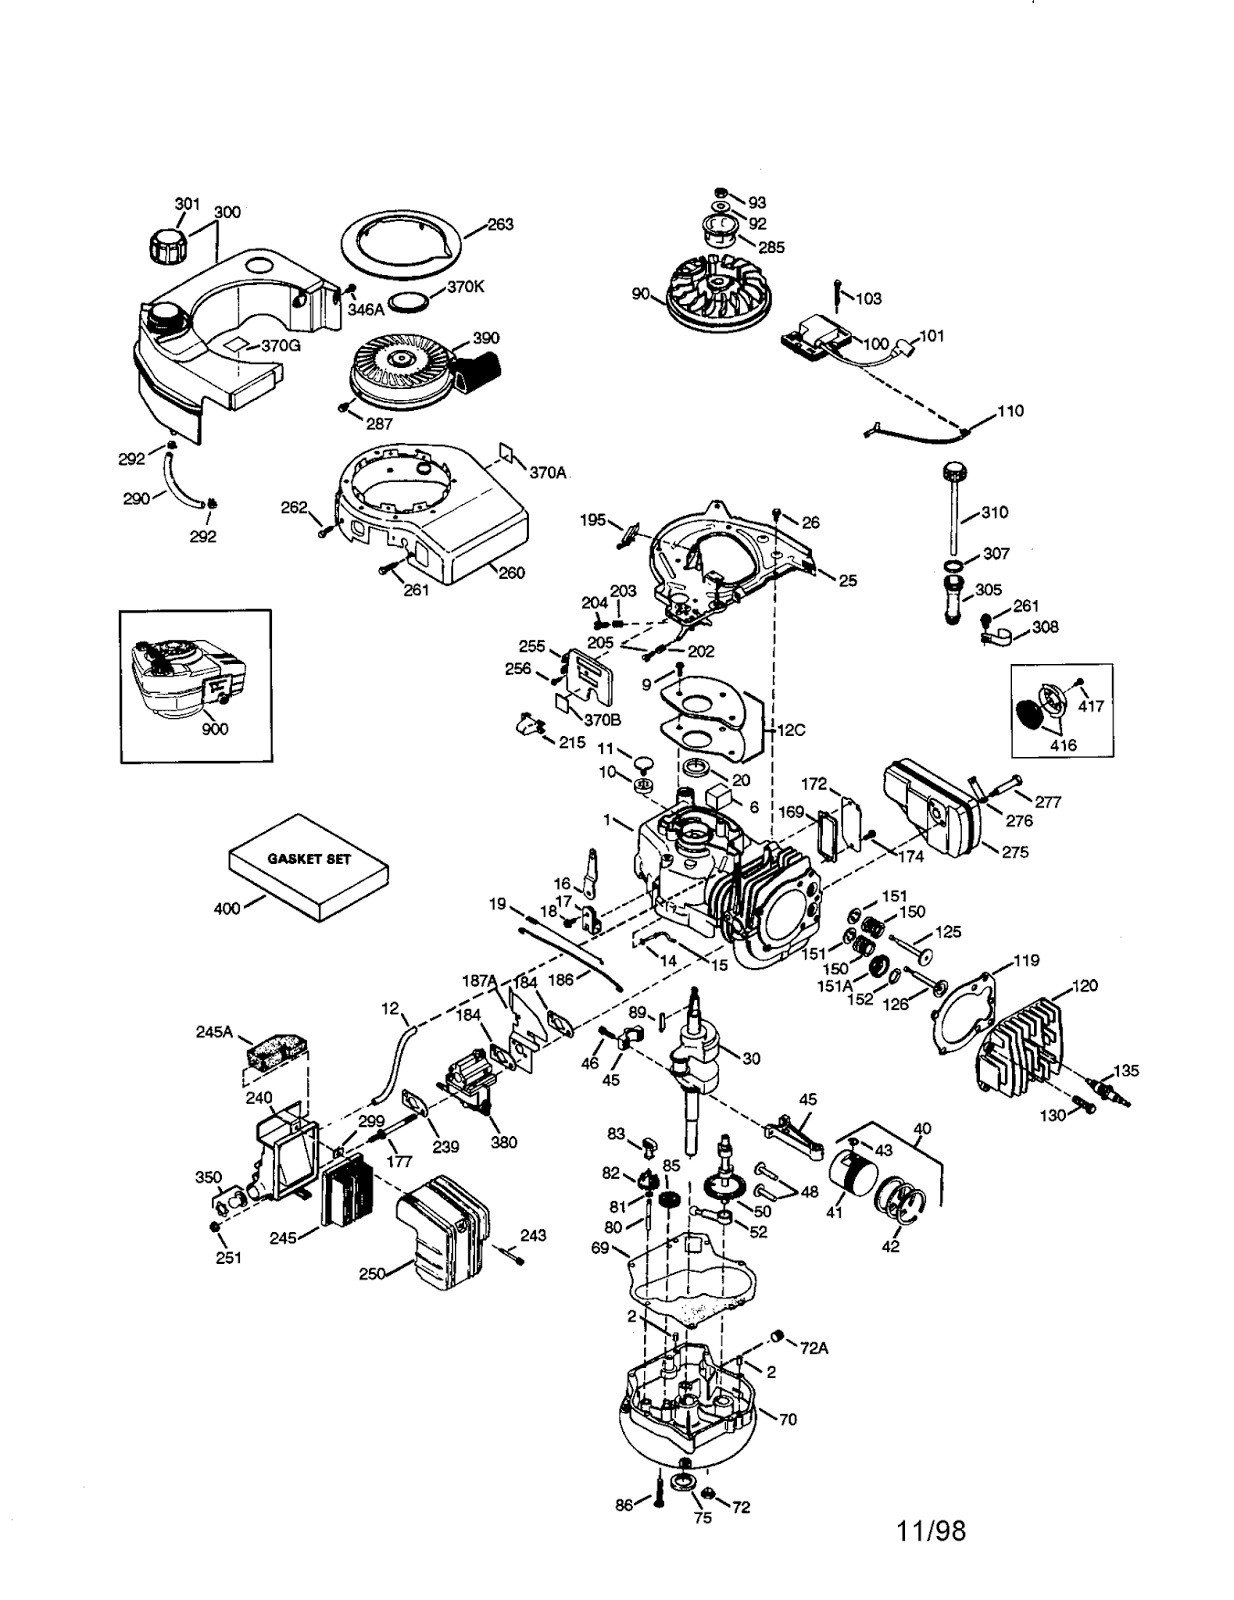 Polaris Sportsman Engine Diagram, Polaris, Get Free Image